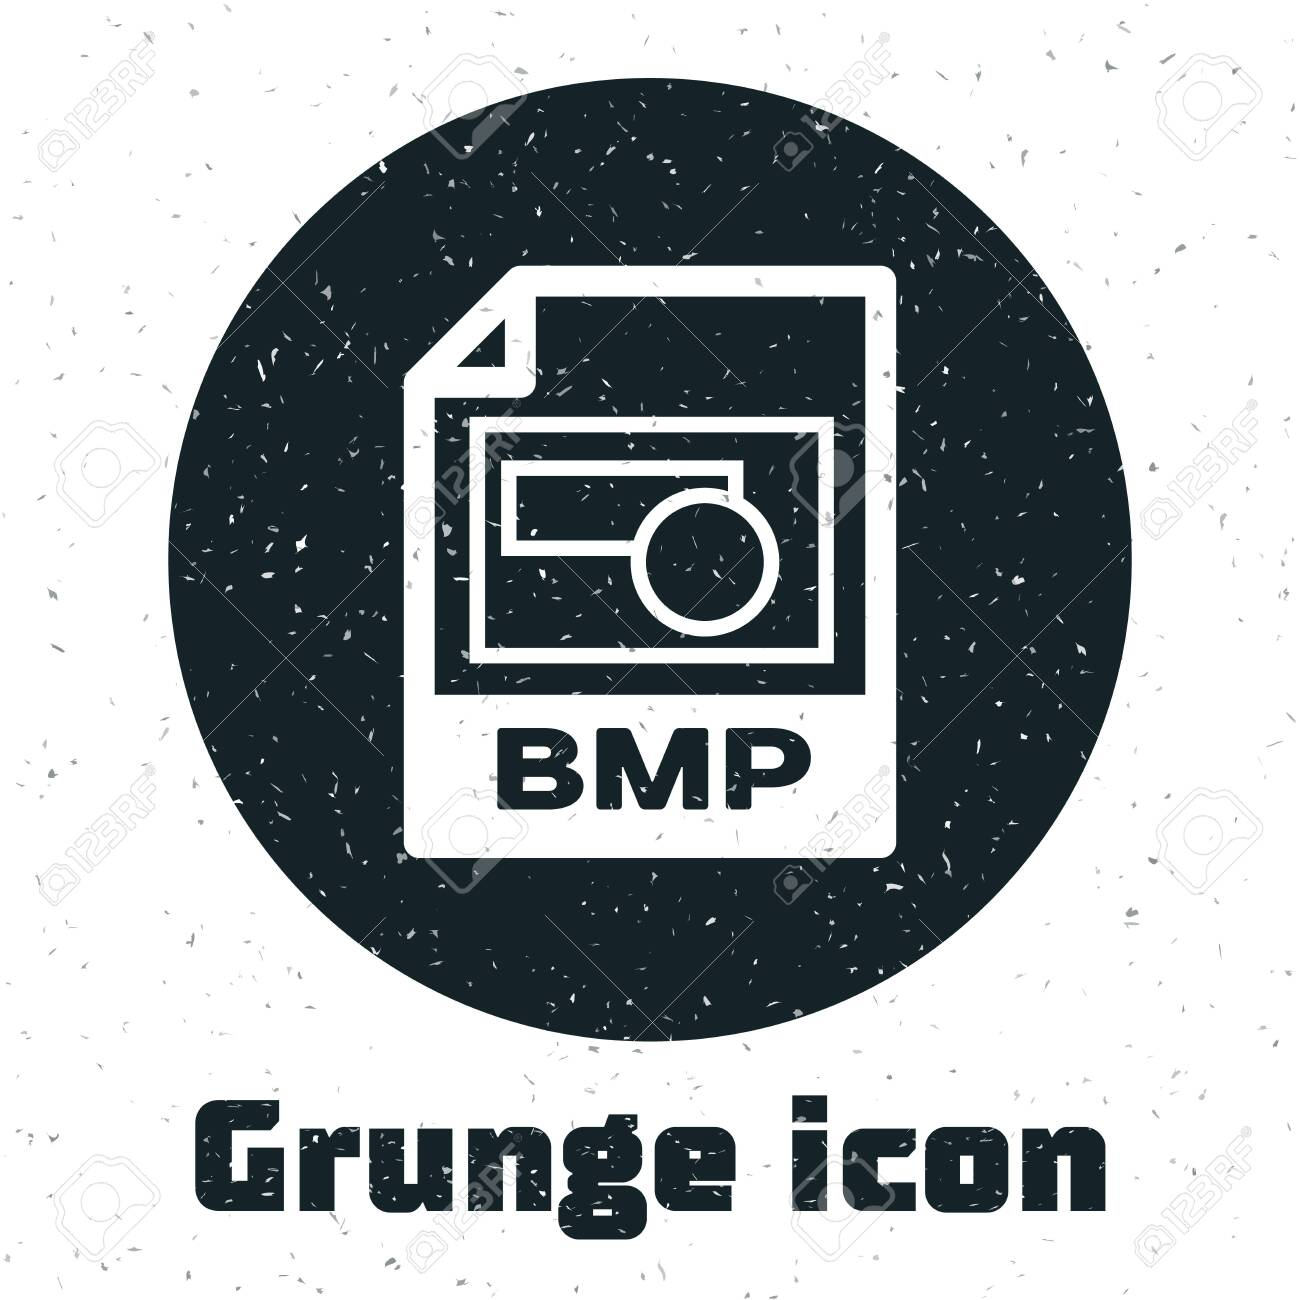 Grunge BMP file document  Download bmp button icon isolated on